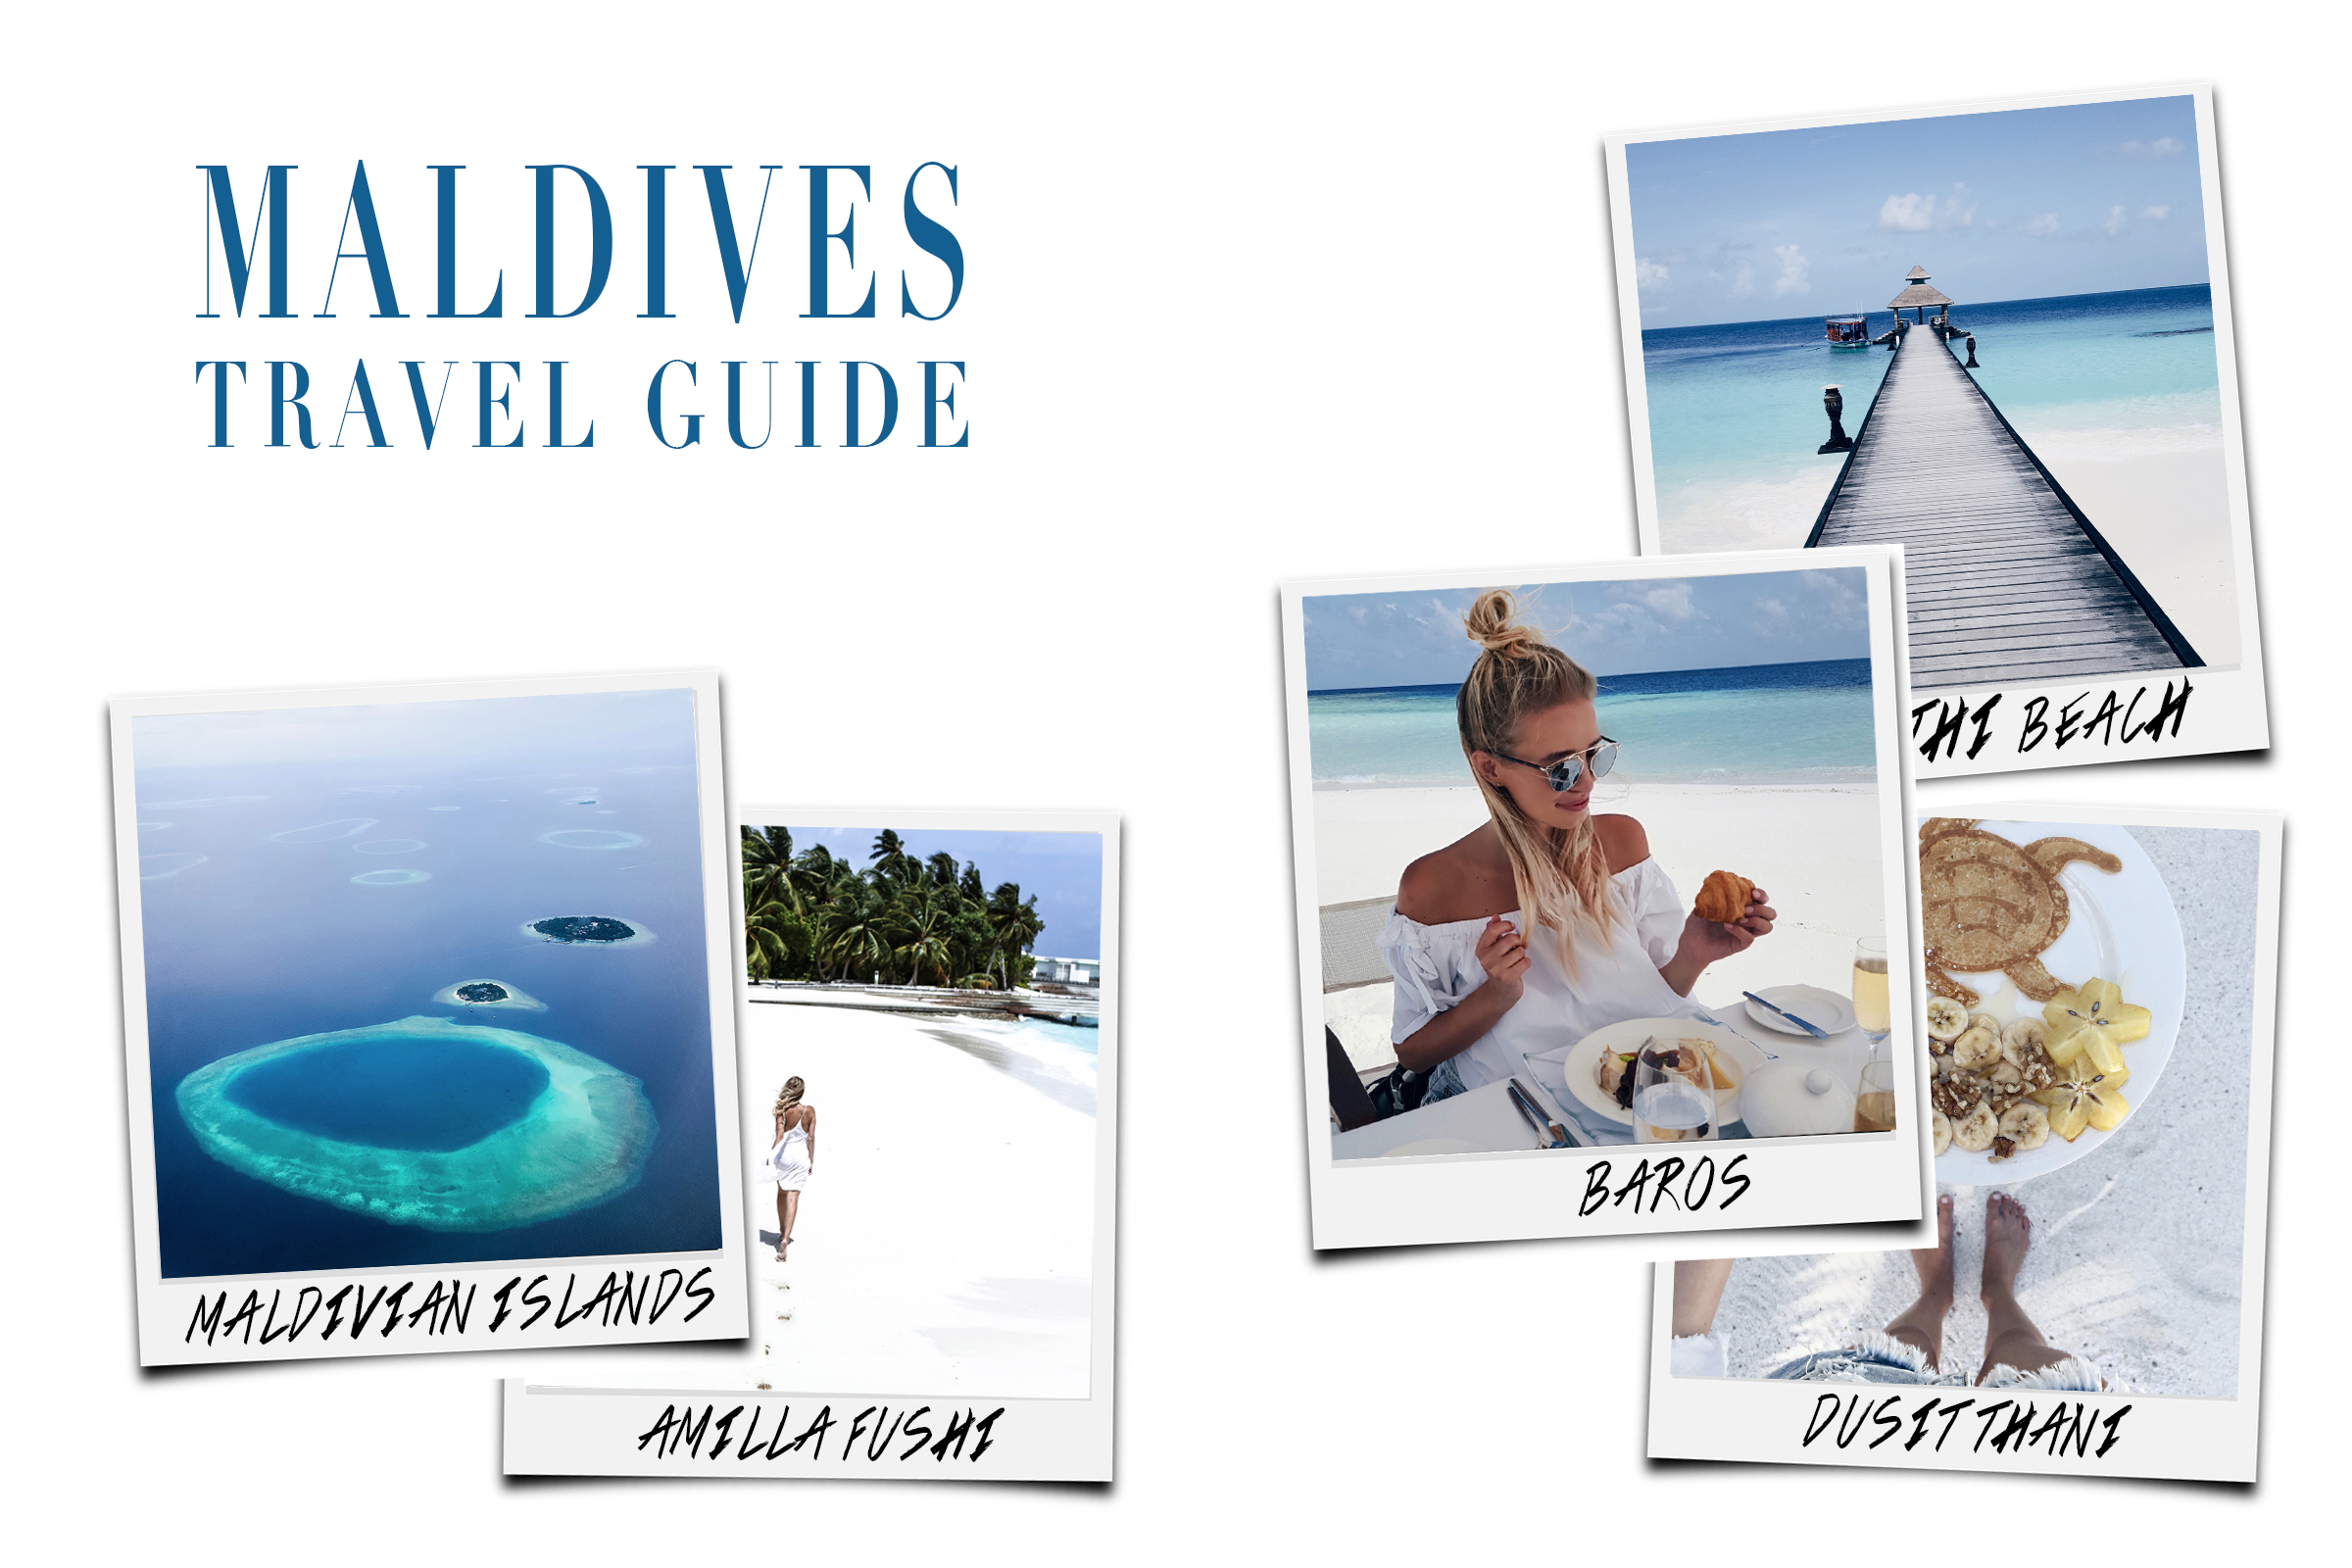 #ohhMaldives | Travelguide Maldives